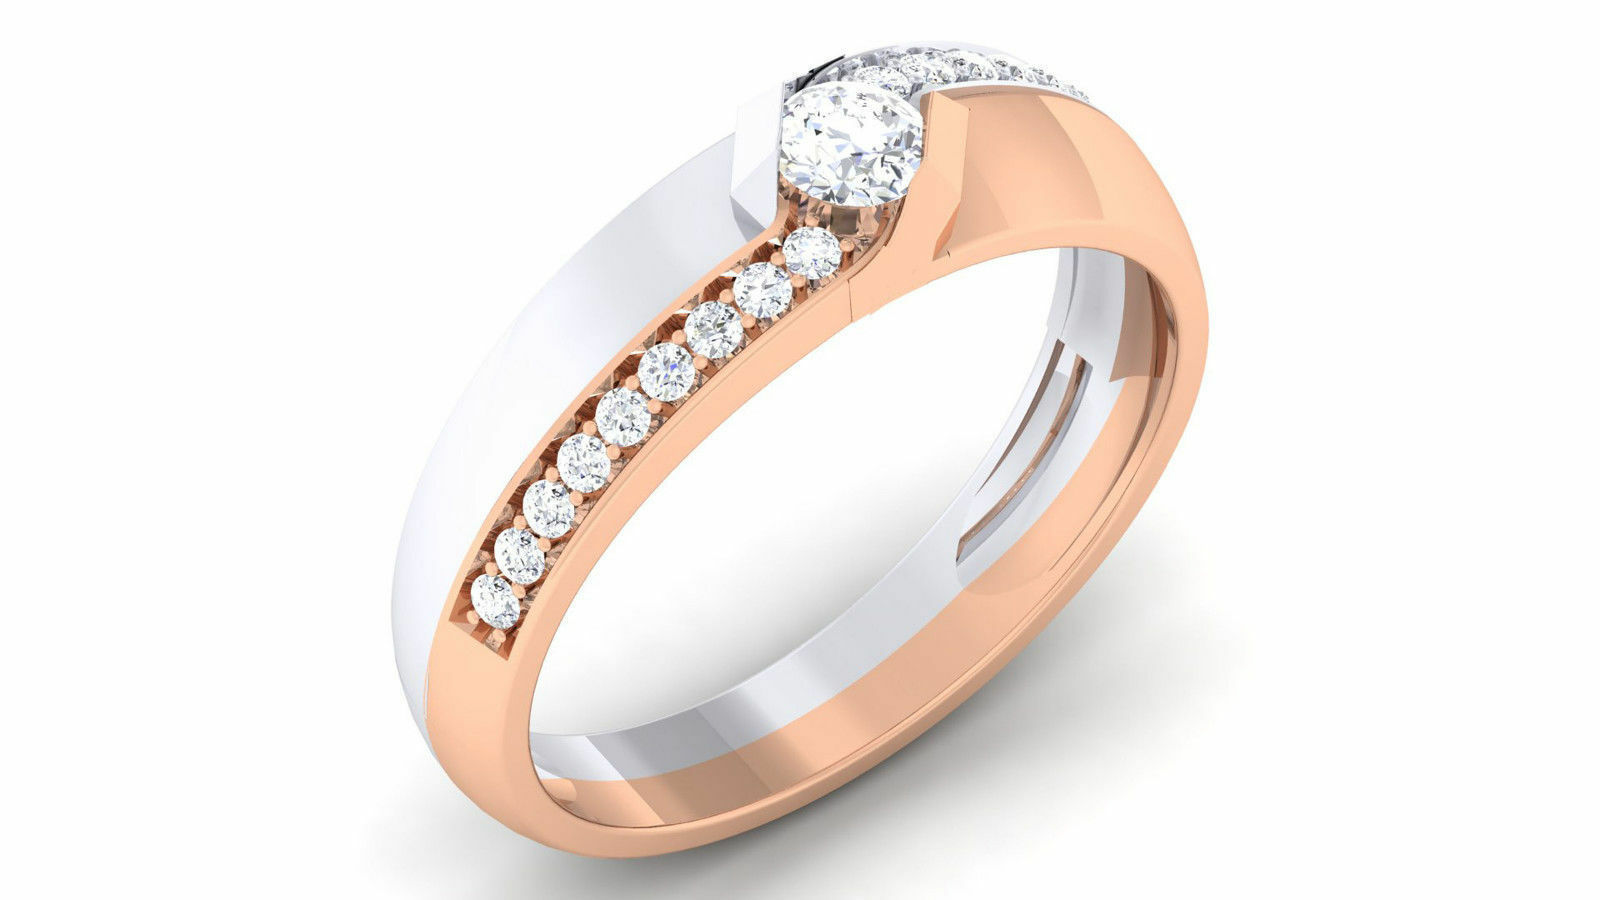 Pave 0.45 Cts Natural Diamonds Unisex Solitaire Ring In Solid Certified 18K gold